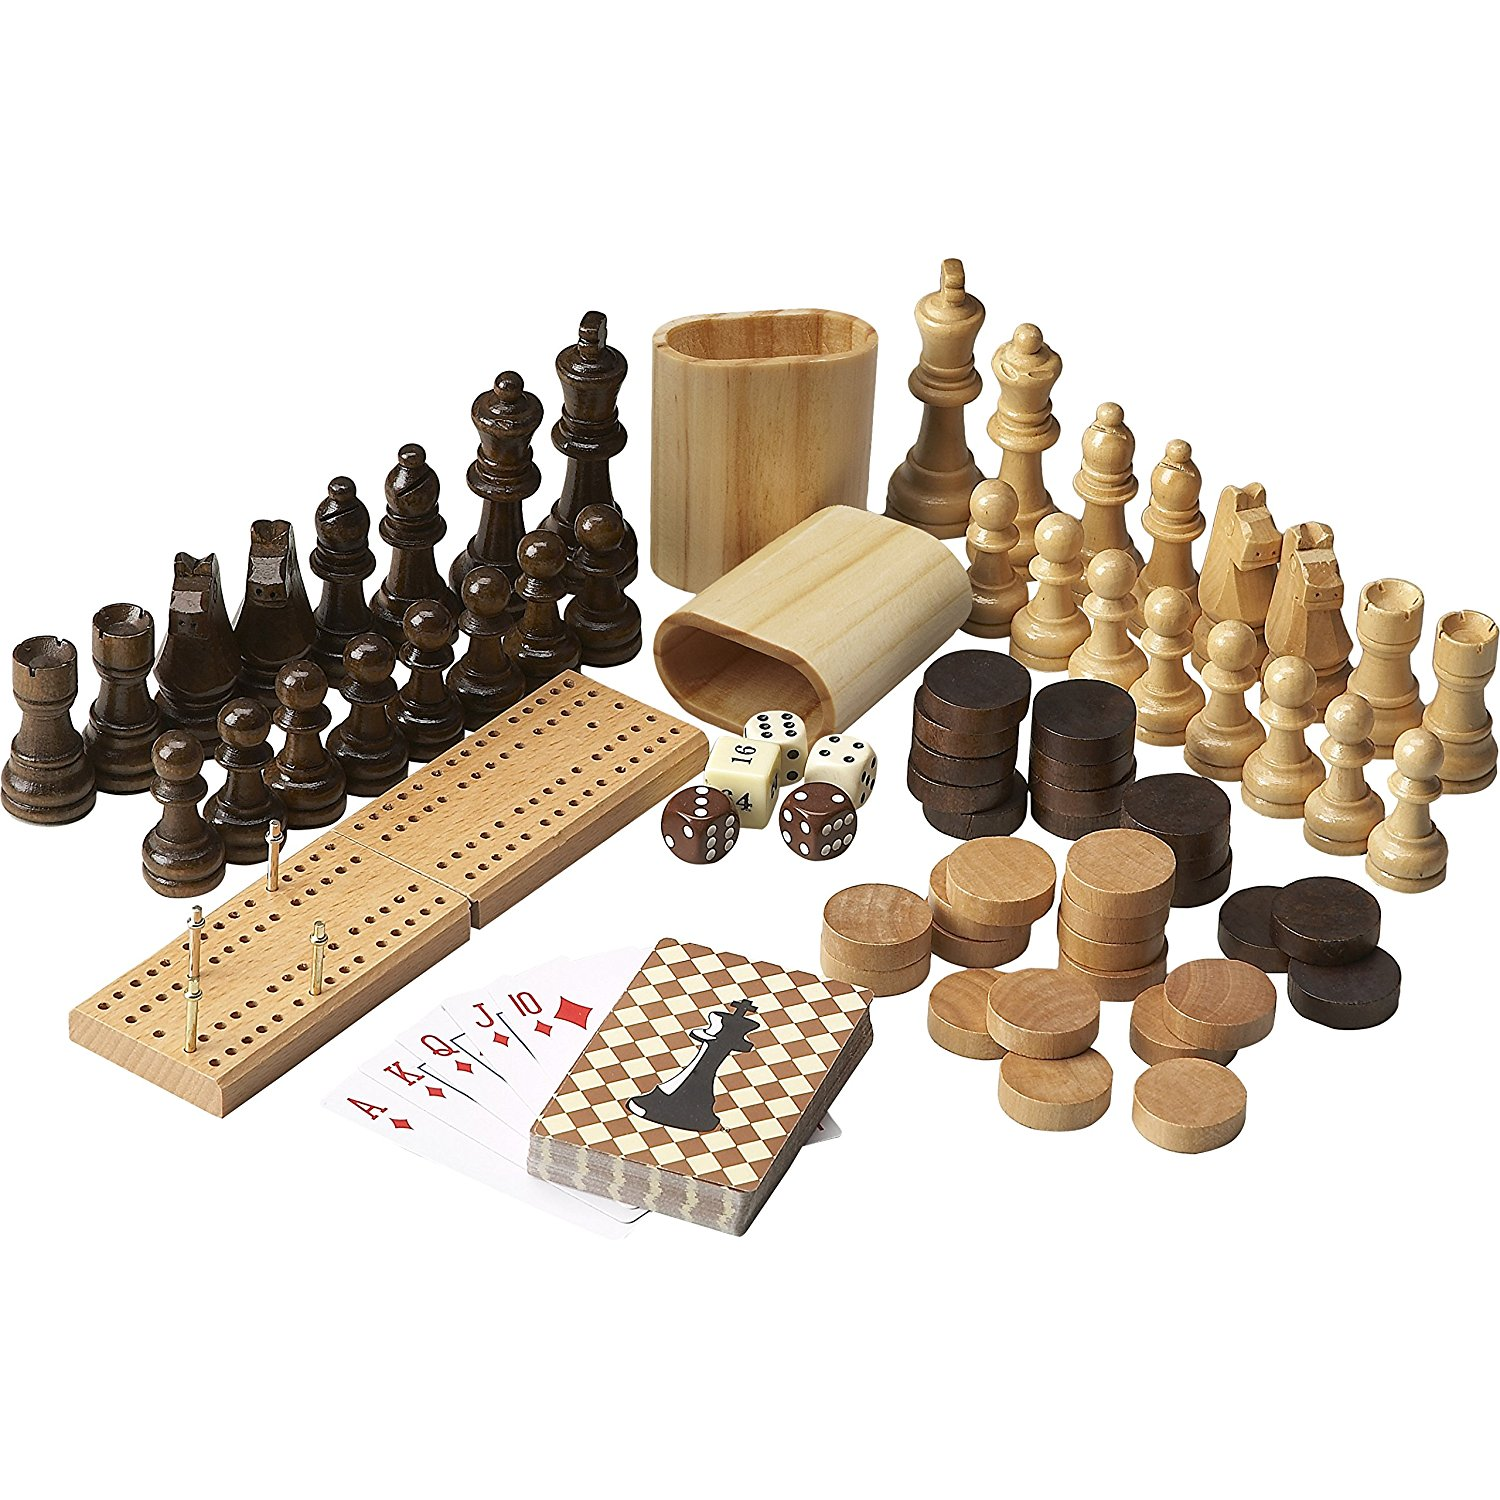 Wooden Multi Game Table Complete Set Carved Wood Chess Set checkers, Cribbage Set & Deck of Cards